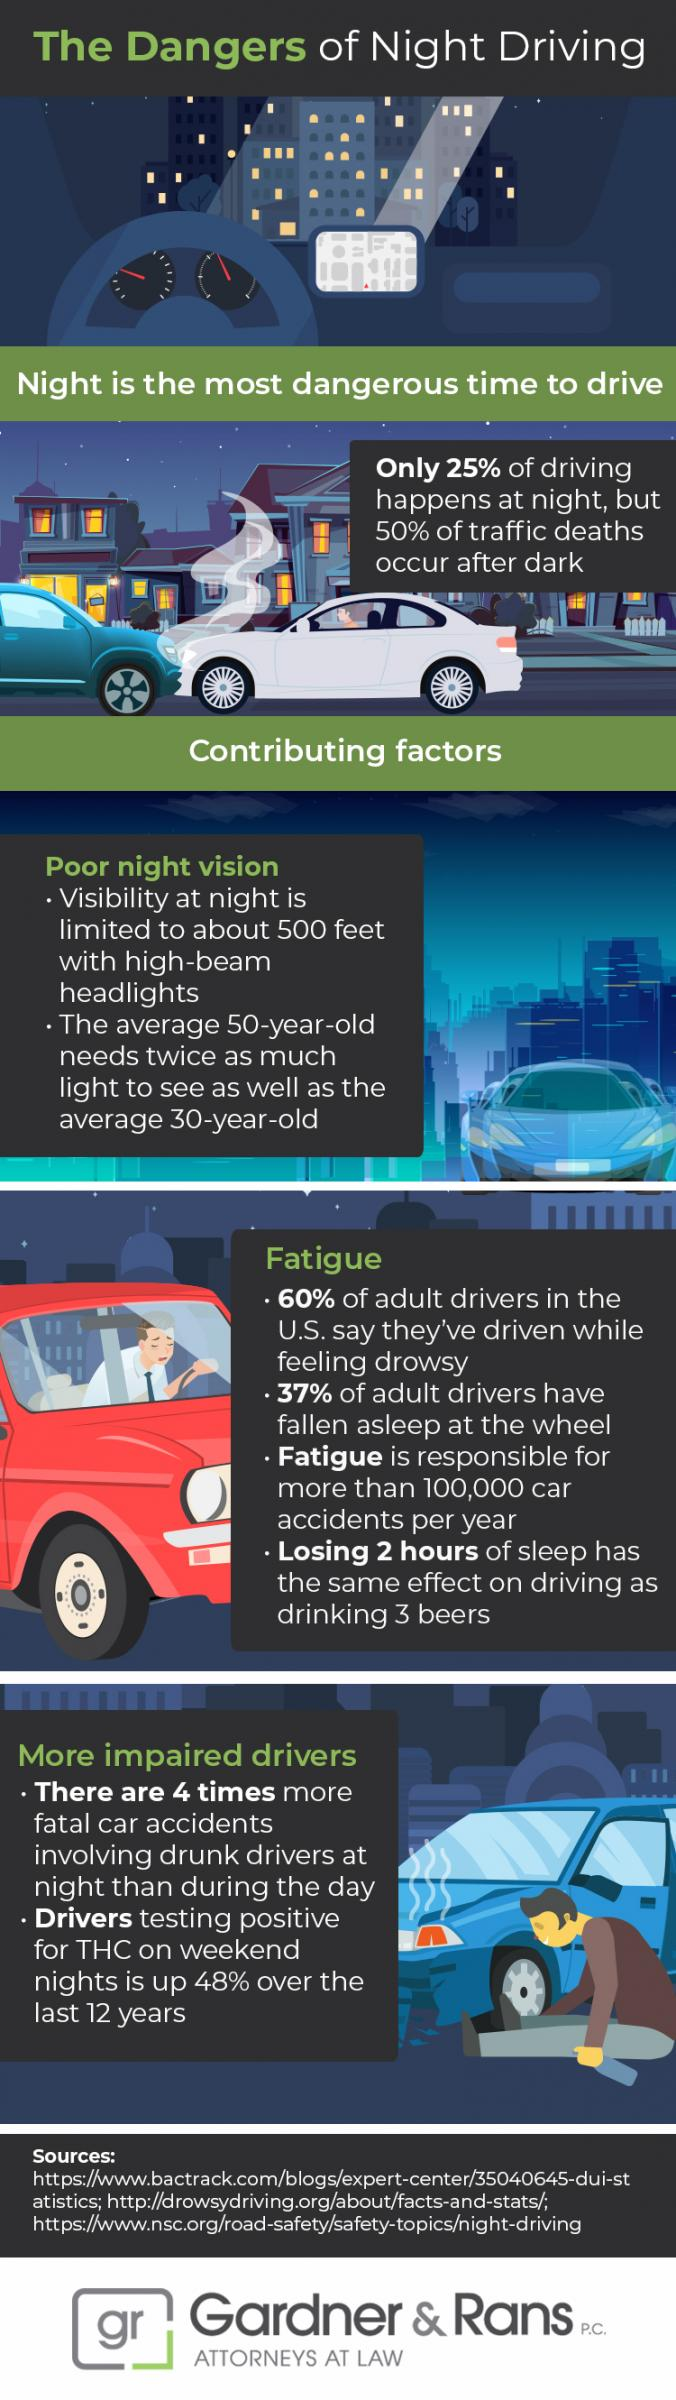 infographic discussing the dangers of night driving